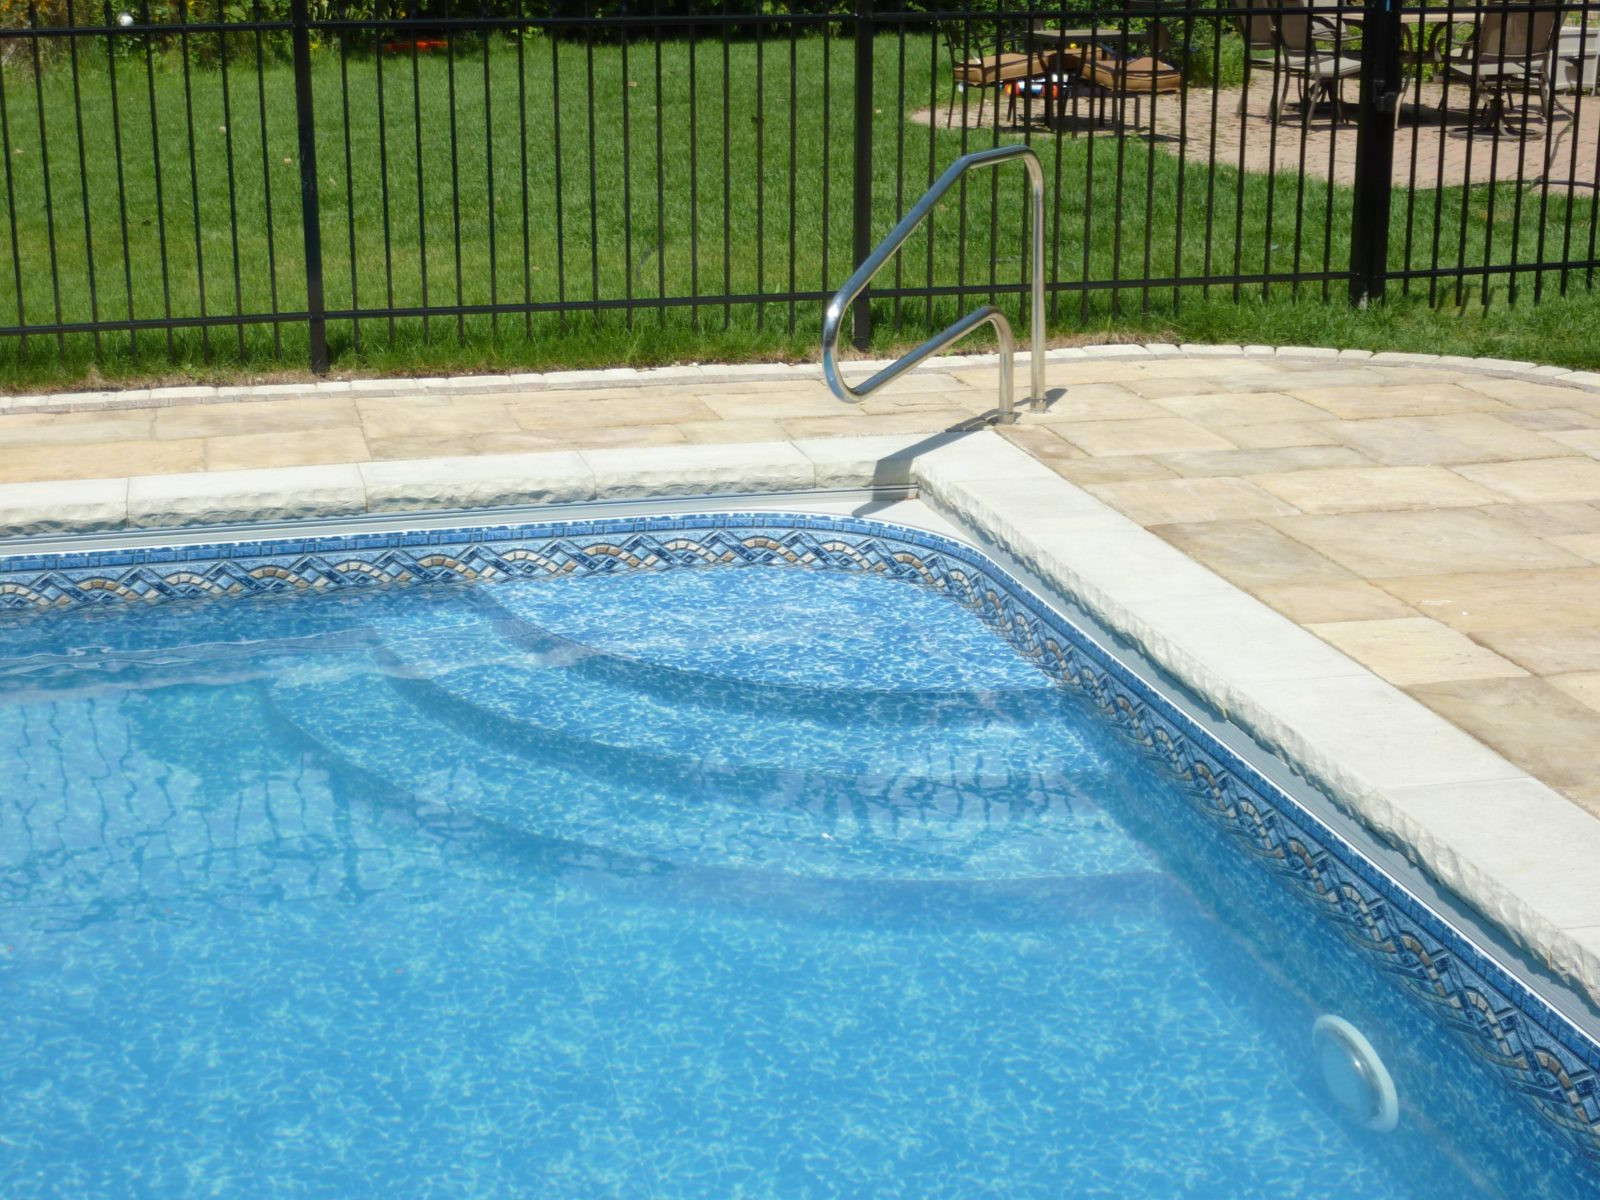 Best ideas about Pool Steps For Inground Pool . Save or Pin Custom Inground Pool Steps made of Concrete Steel or Polymer Now.